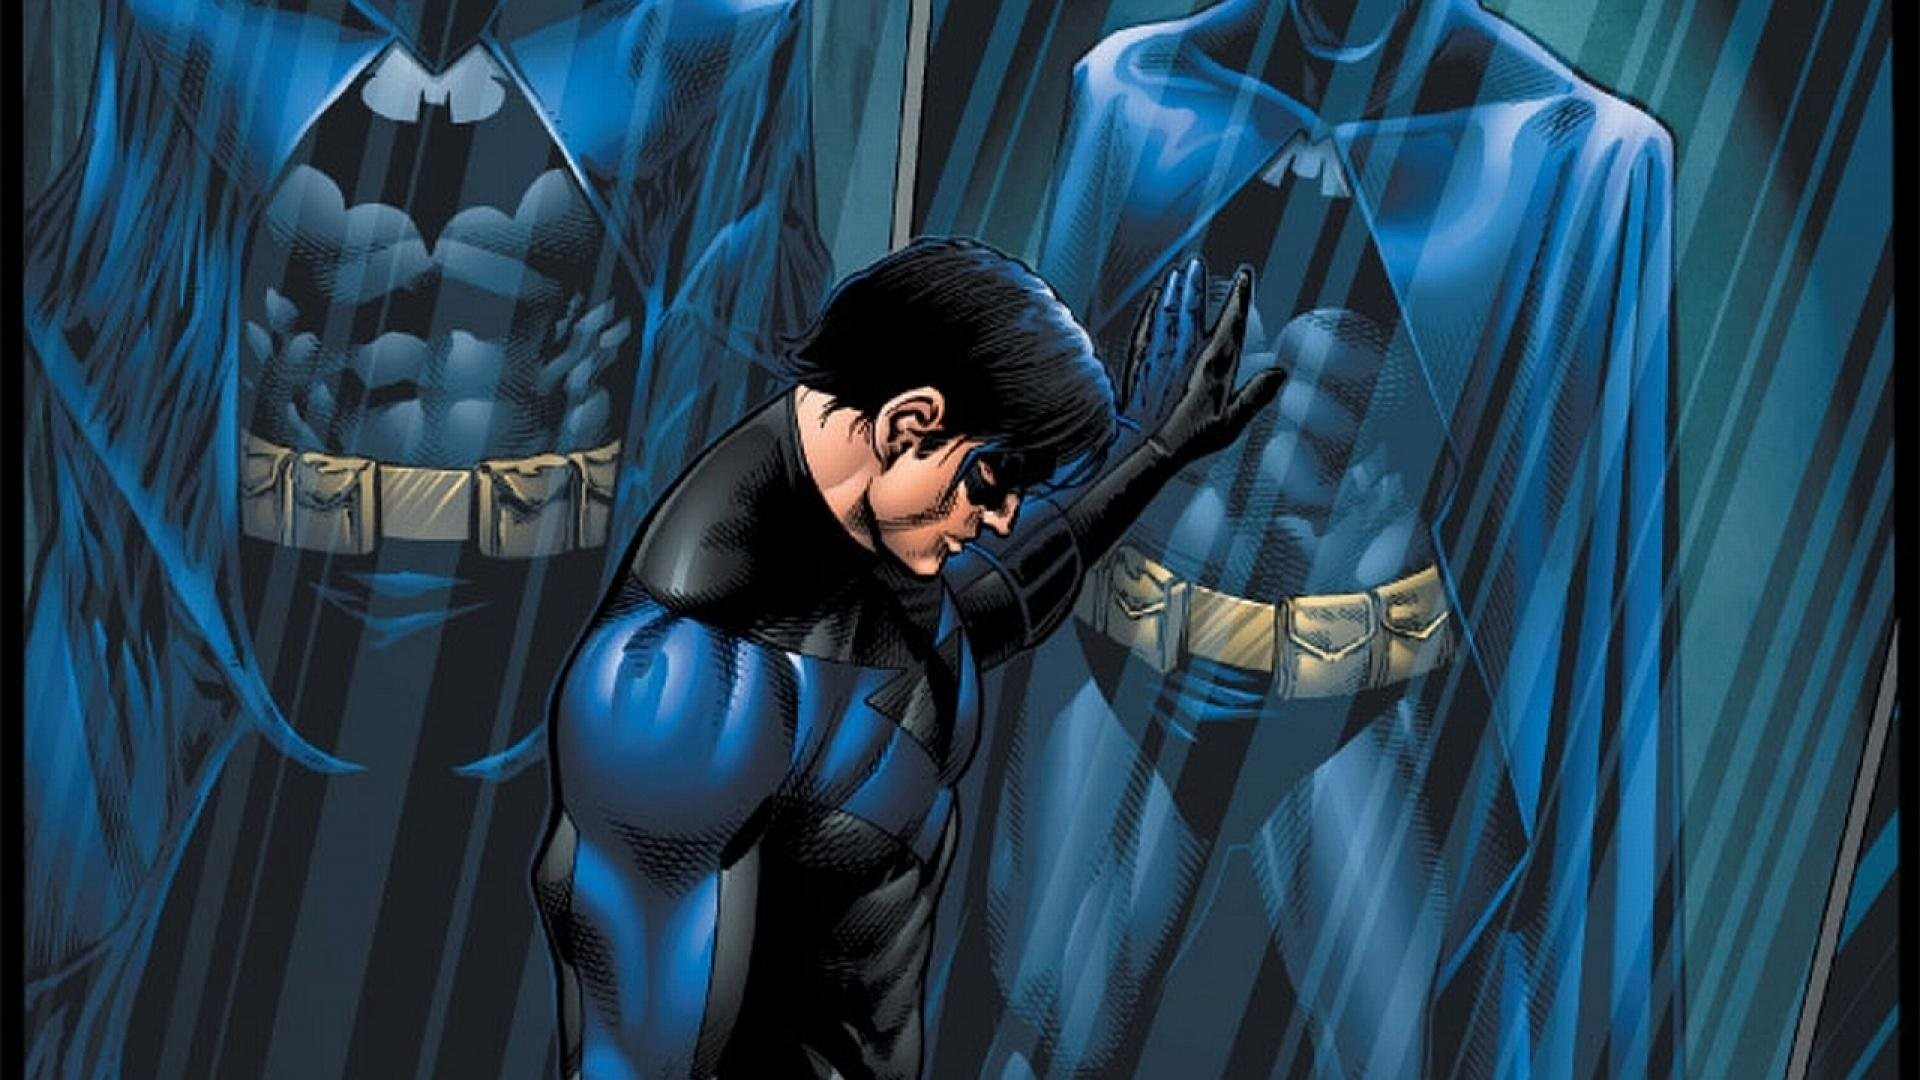 Res: 1920x1080, Nightwing Wallpapers  – Wallpapers and Pictures for PC & Mac,  Laptop, Tablet, Mobile Phone